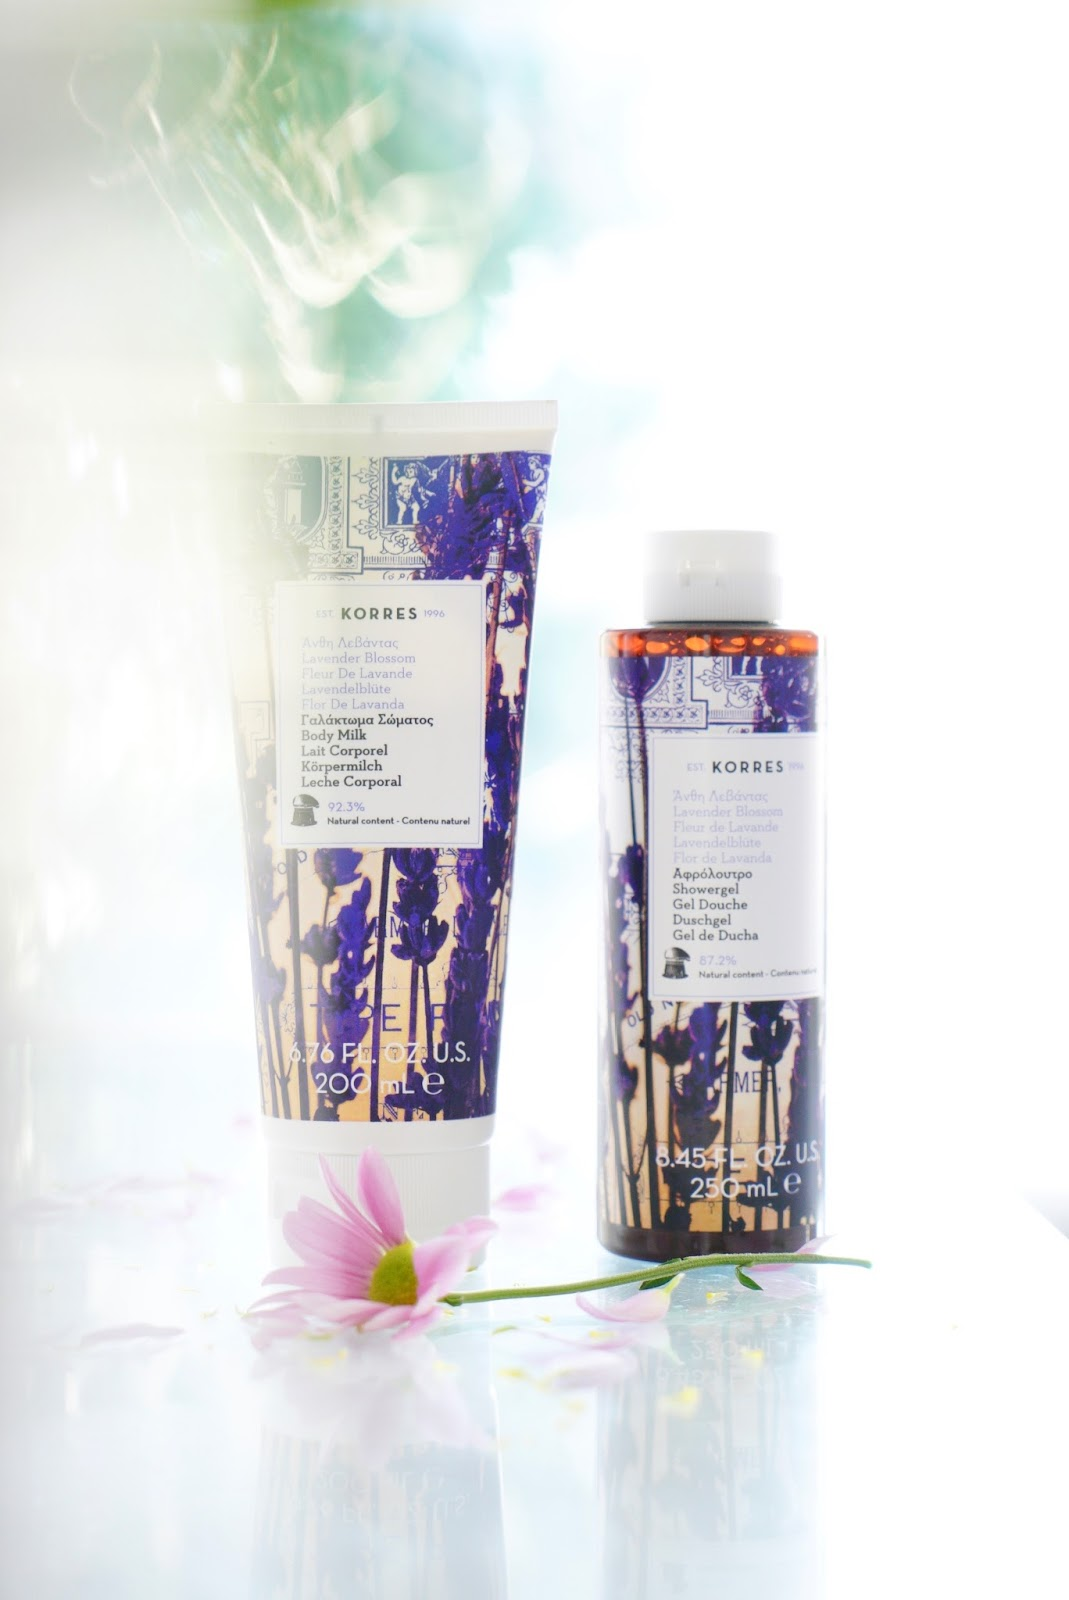 Korres lavender blossom bath and body